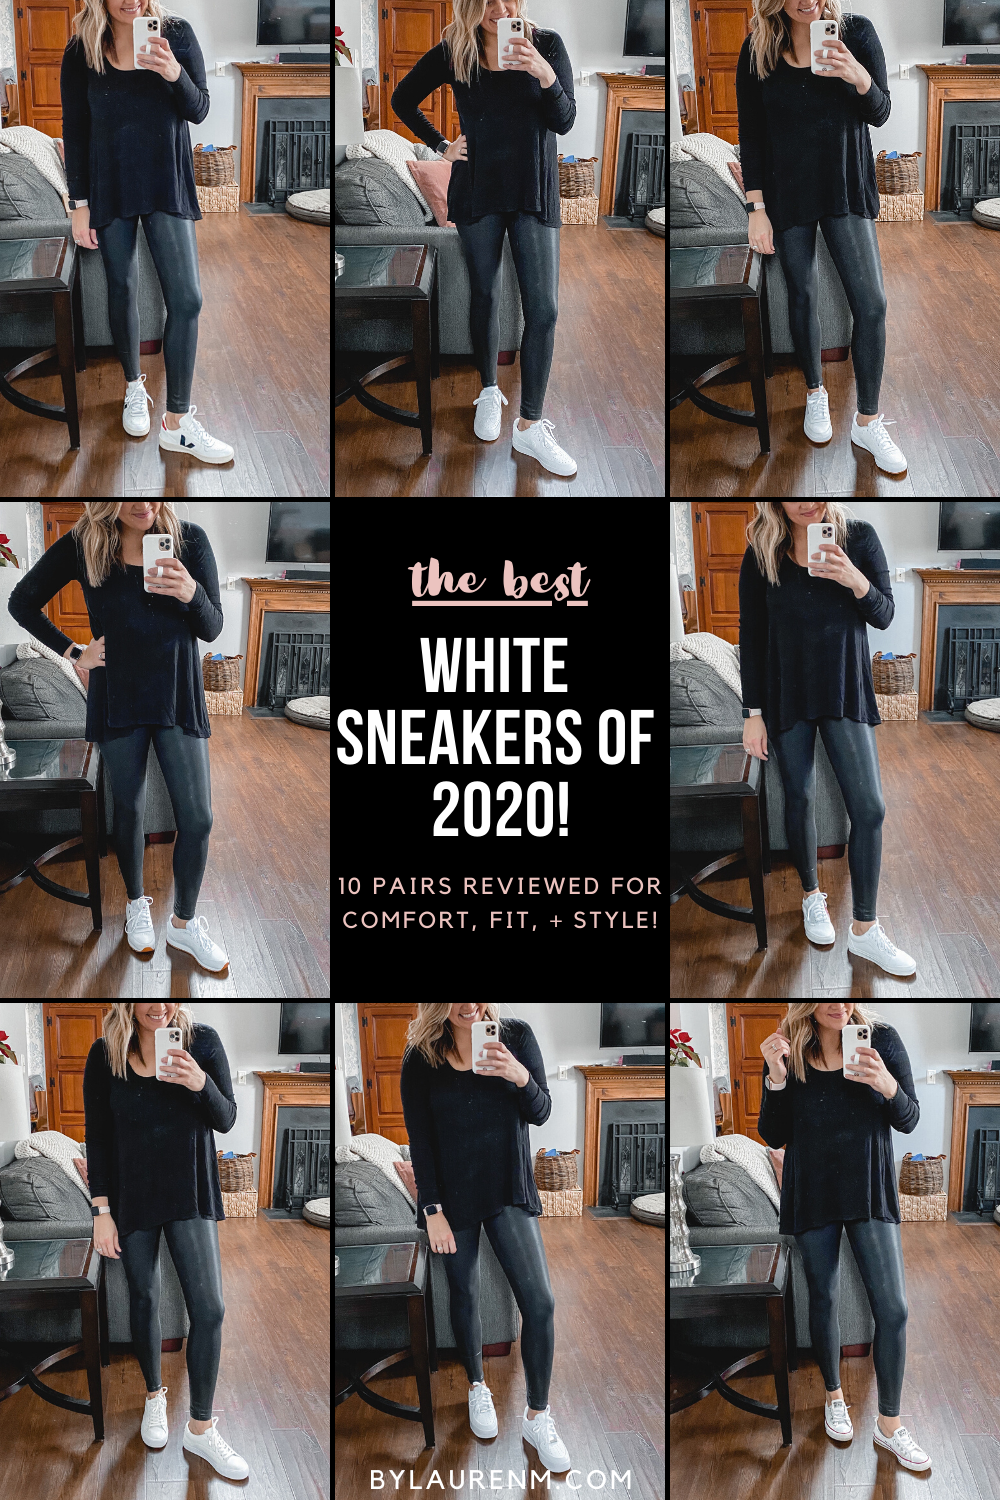 The BEST white sneakers! Lauren Dix reviewed 10 pairs of white sneakers for comfort, fit, and style! See her favorites here!